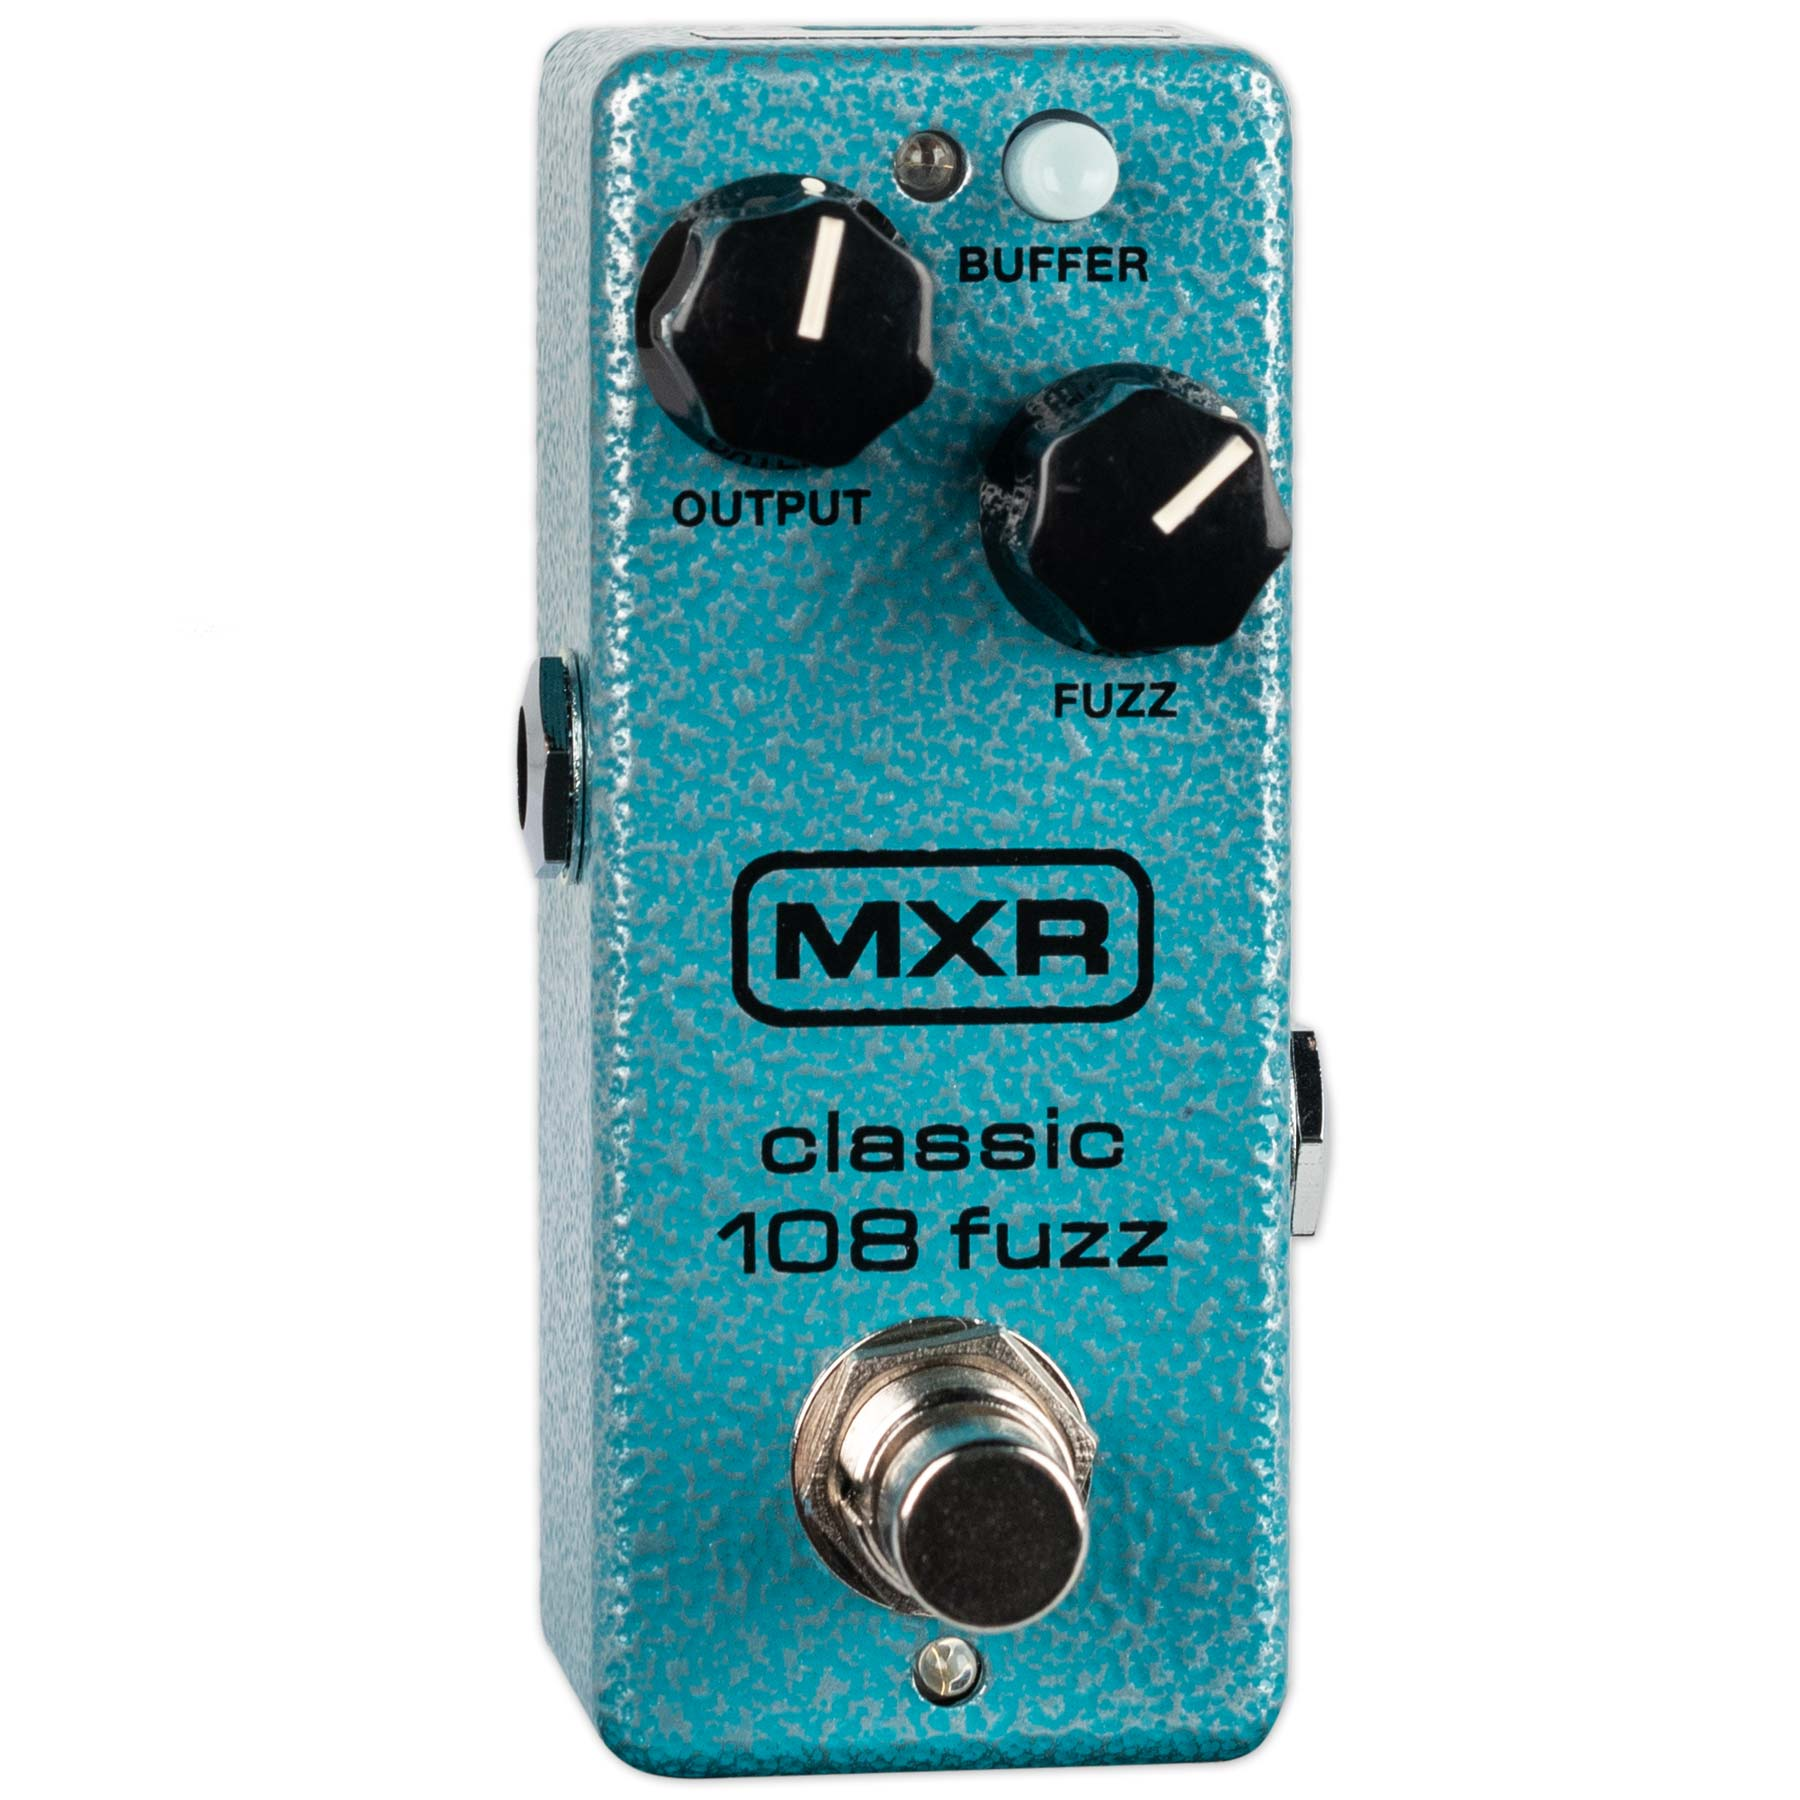 USED MXR CLASSIC 108 MINI FUZZ WITH BOX